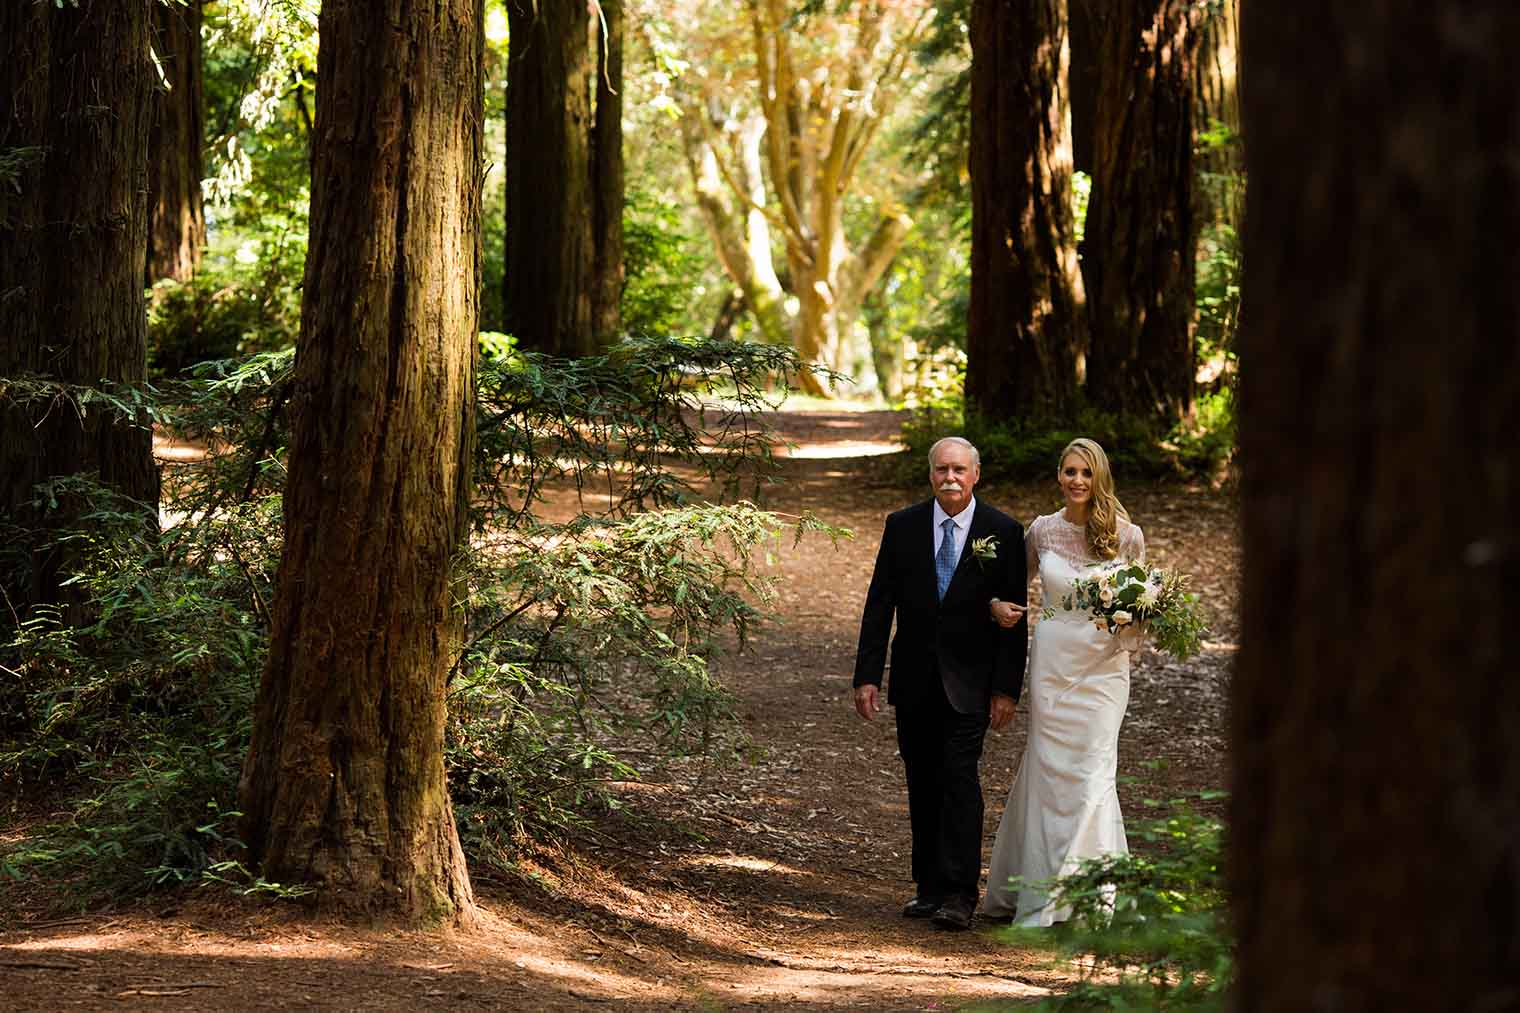 Wedding Ceremony at Roberts Regional Park in Oakland California